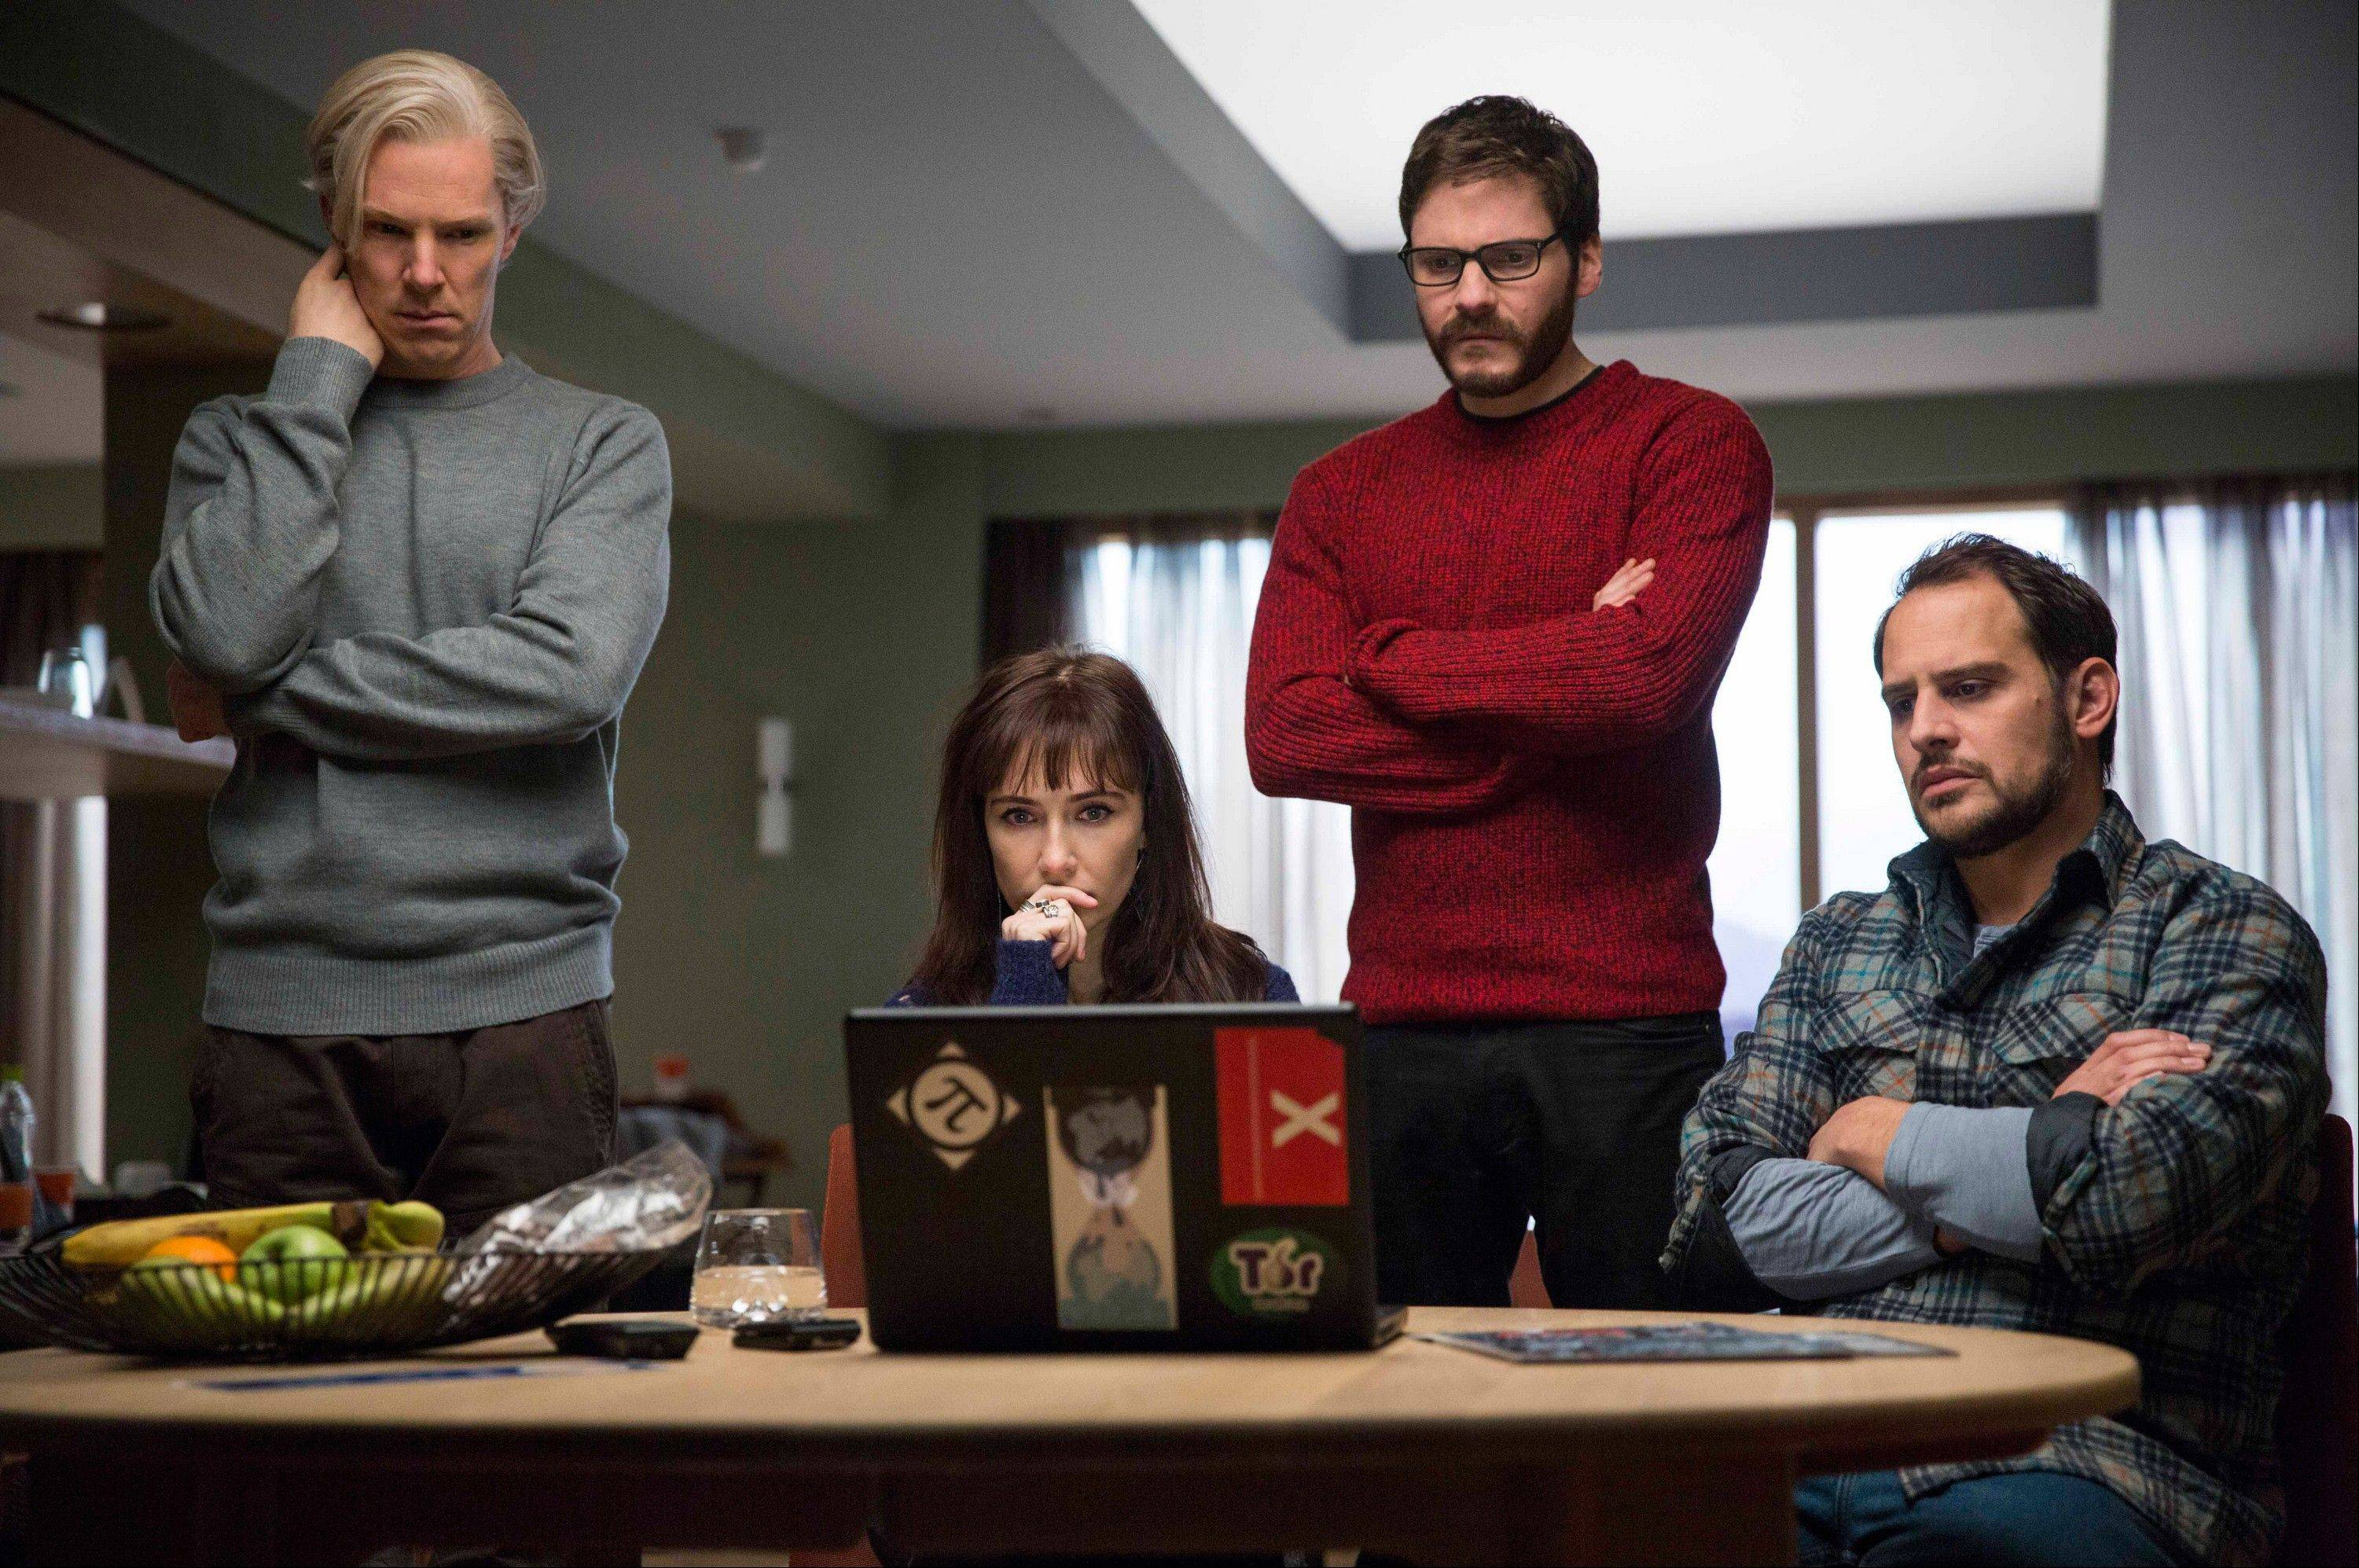 Benedict Cumberbatch, left, Carice van Houten, Daniel Bruhl and Moritz Bleibtreu star in �The Fifth Estate,� which is being shown during the Toronto International Film Festival this week.